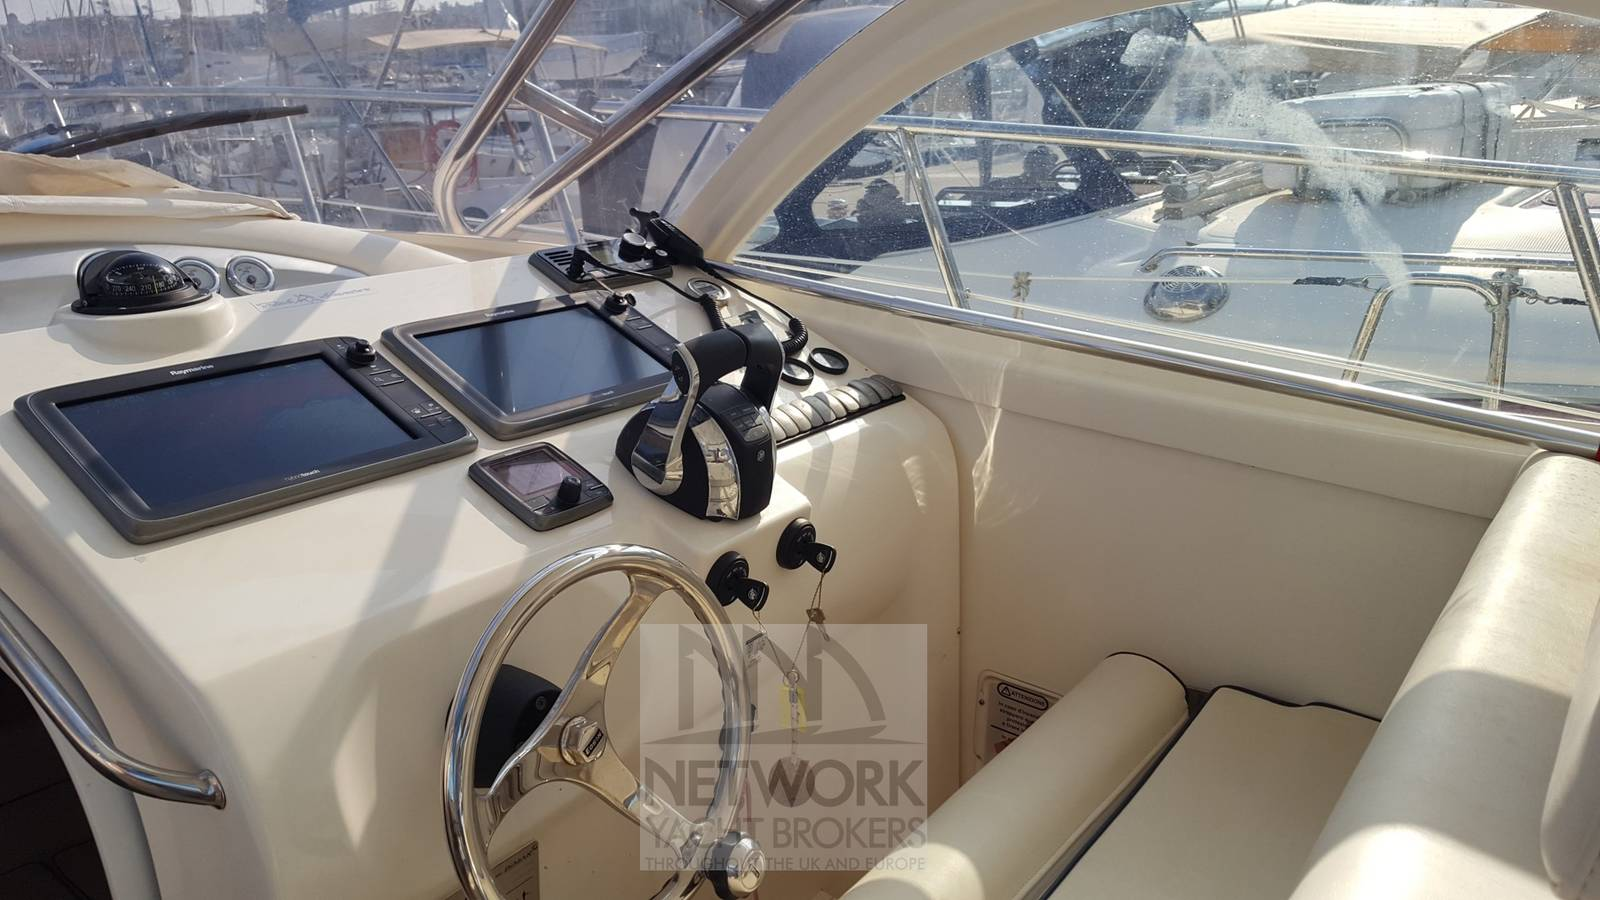 Bimax Genesis 930 - Network Yacht Brokers | Antibes